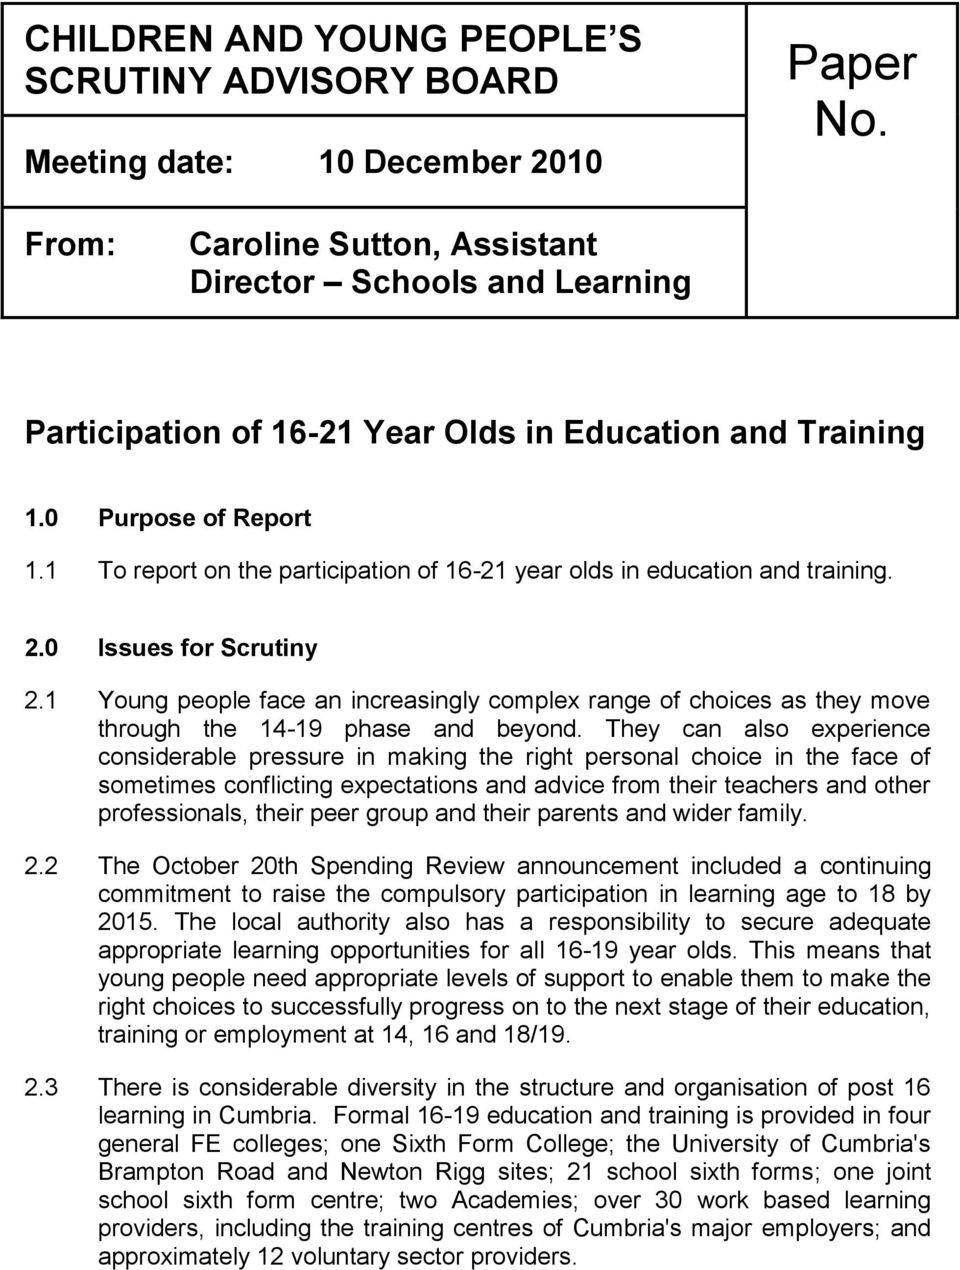 1 To report on the participation of 16-21 year olds in education and training. 2.0 Issues for Scrutiny 2.